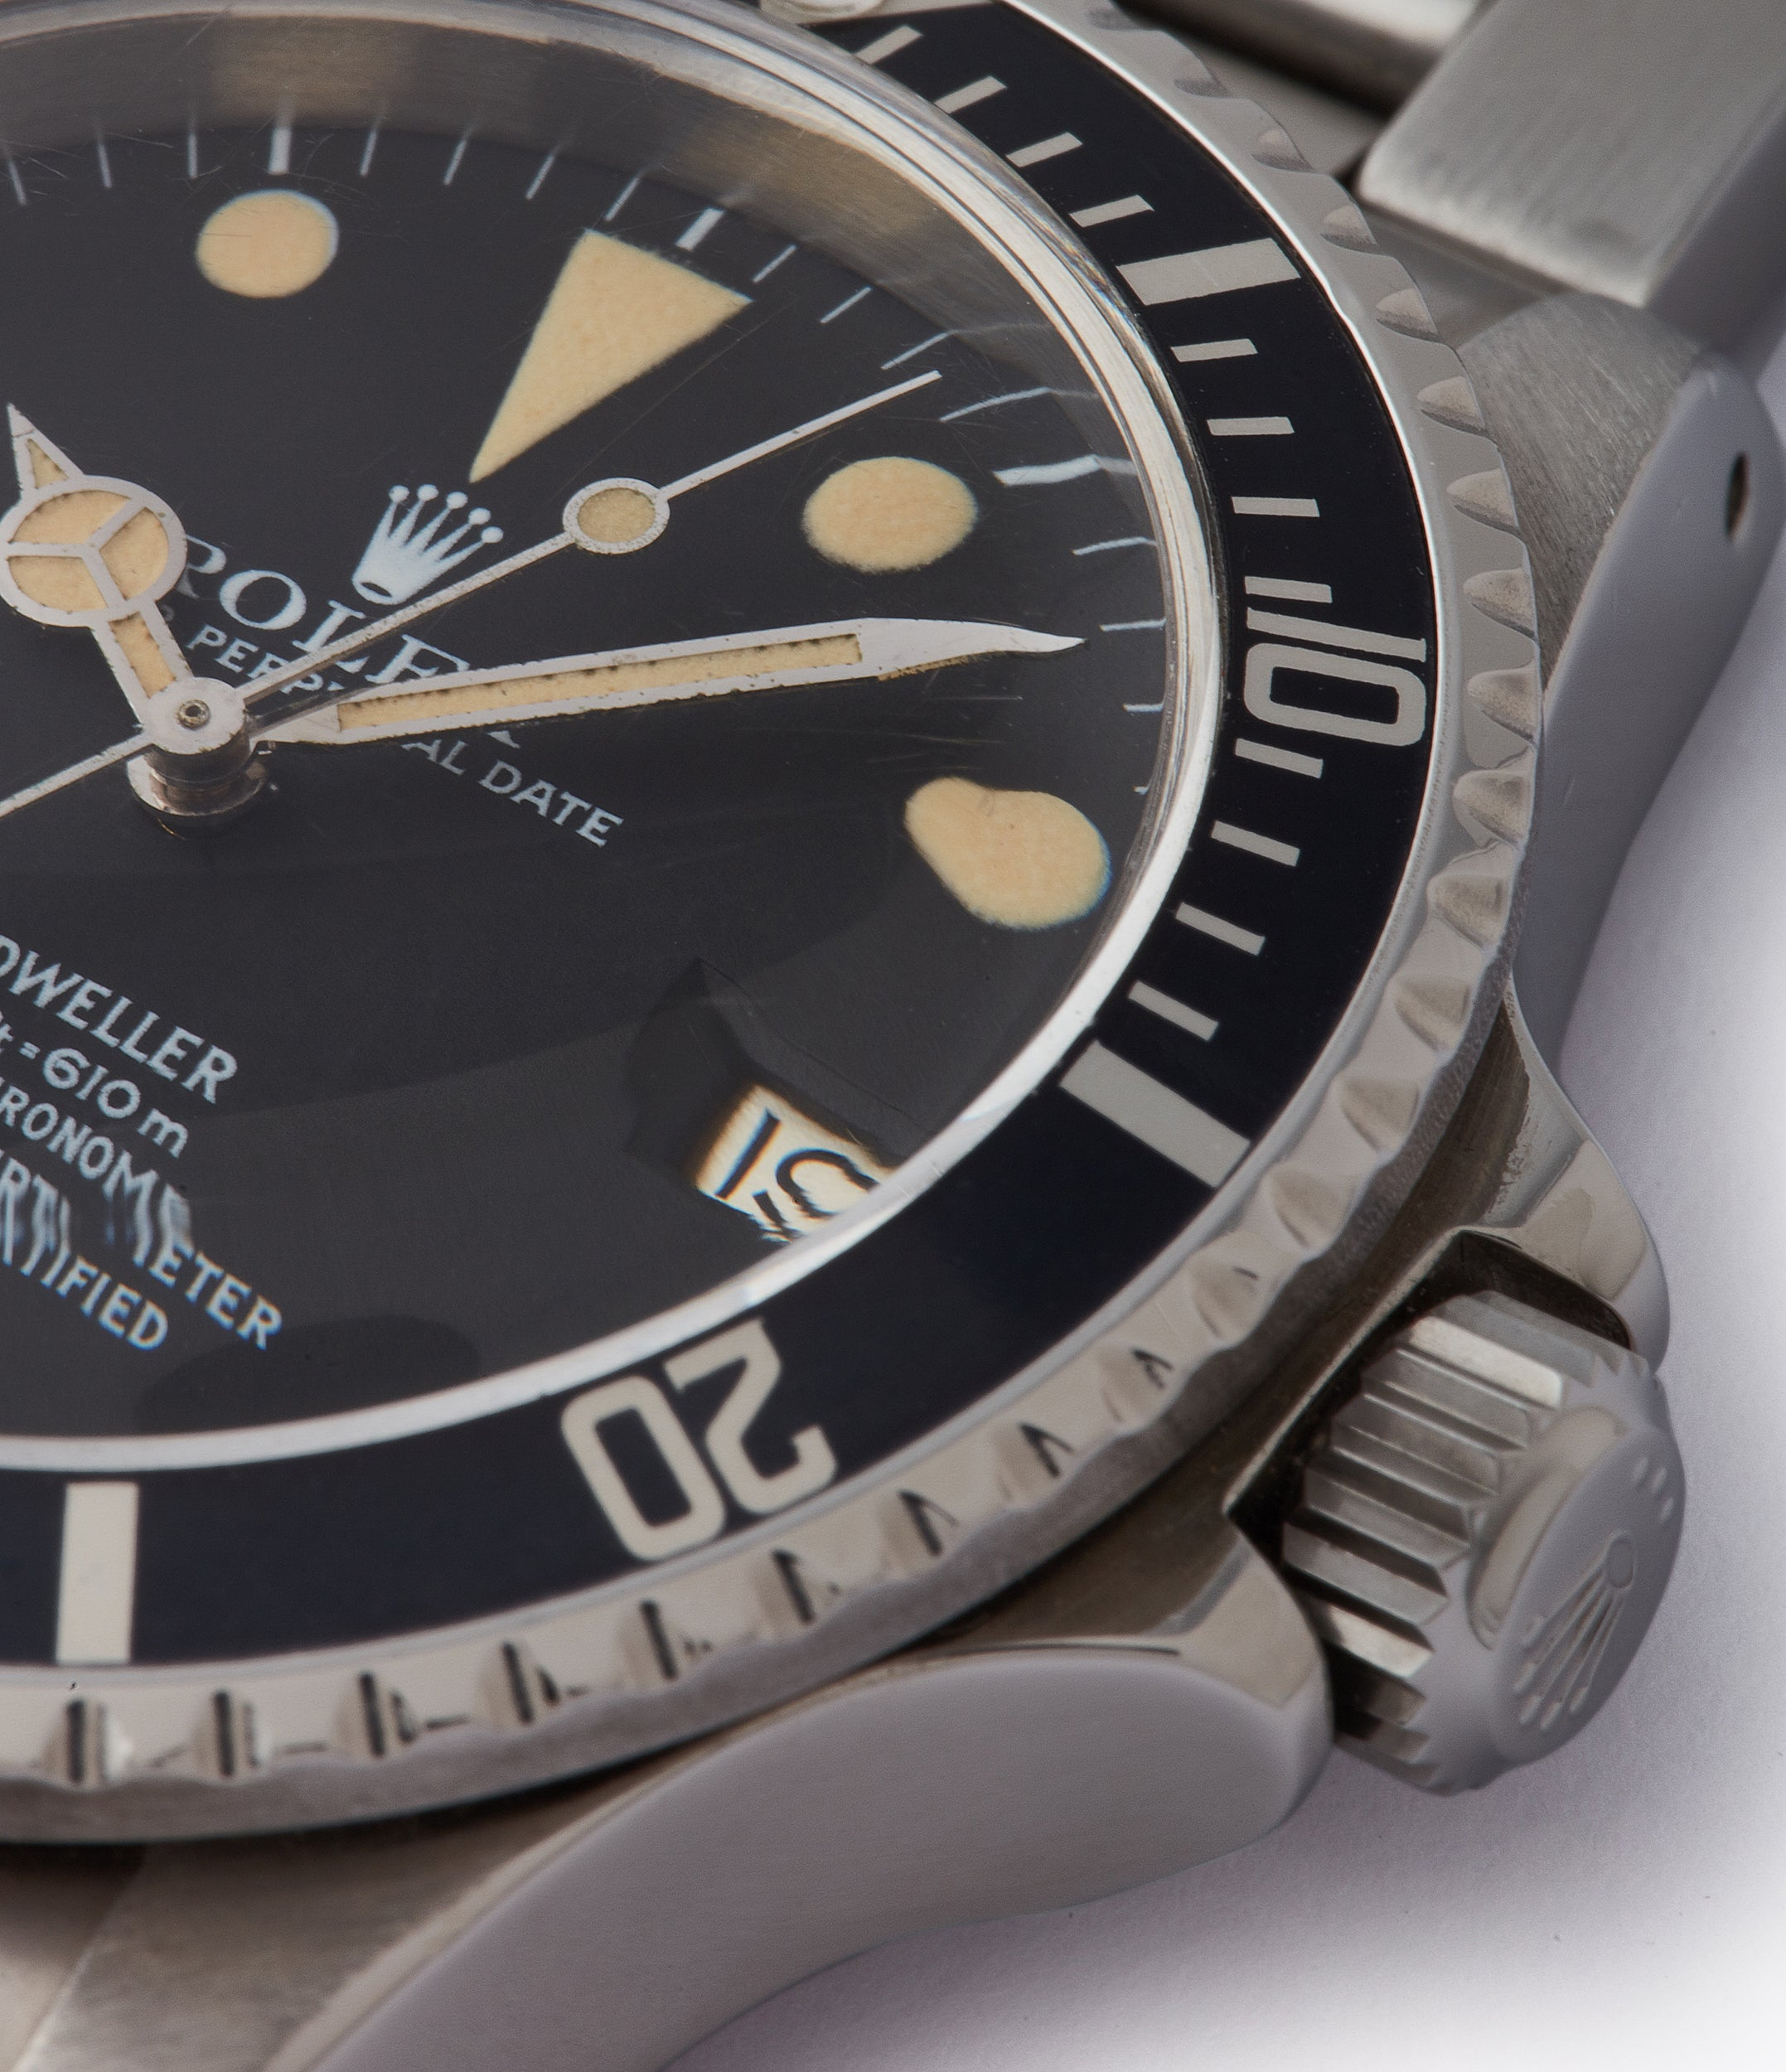 selling Rolex Sea-Dweller oyster Great White 1665 mechanical automatic